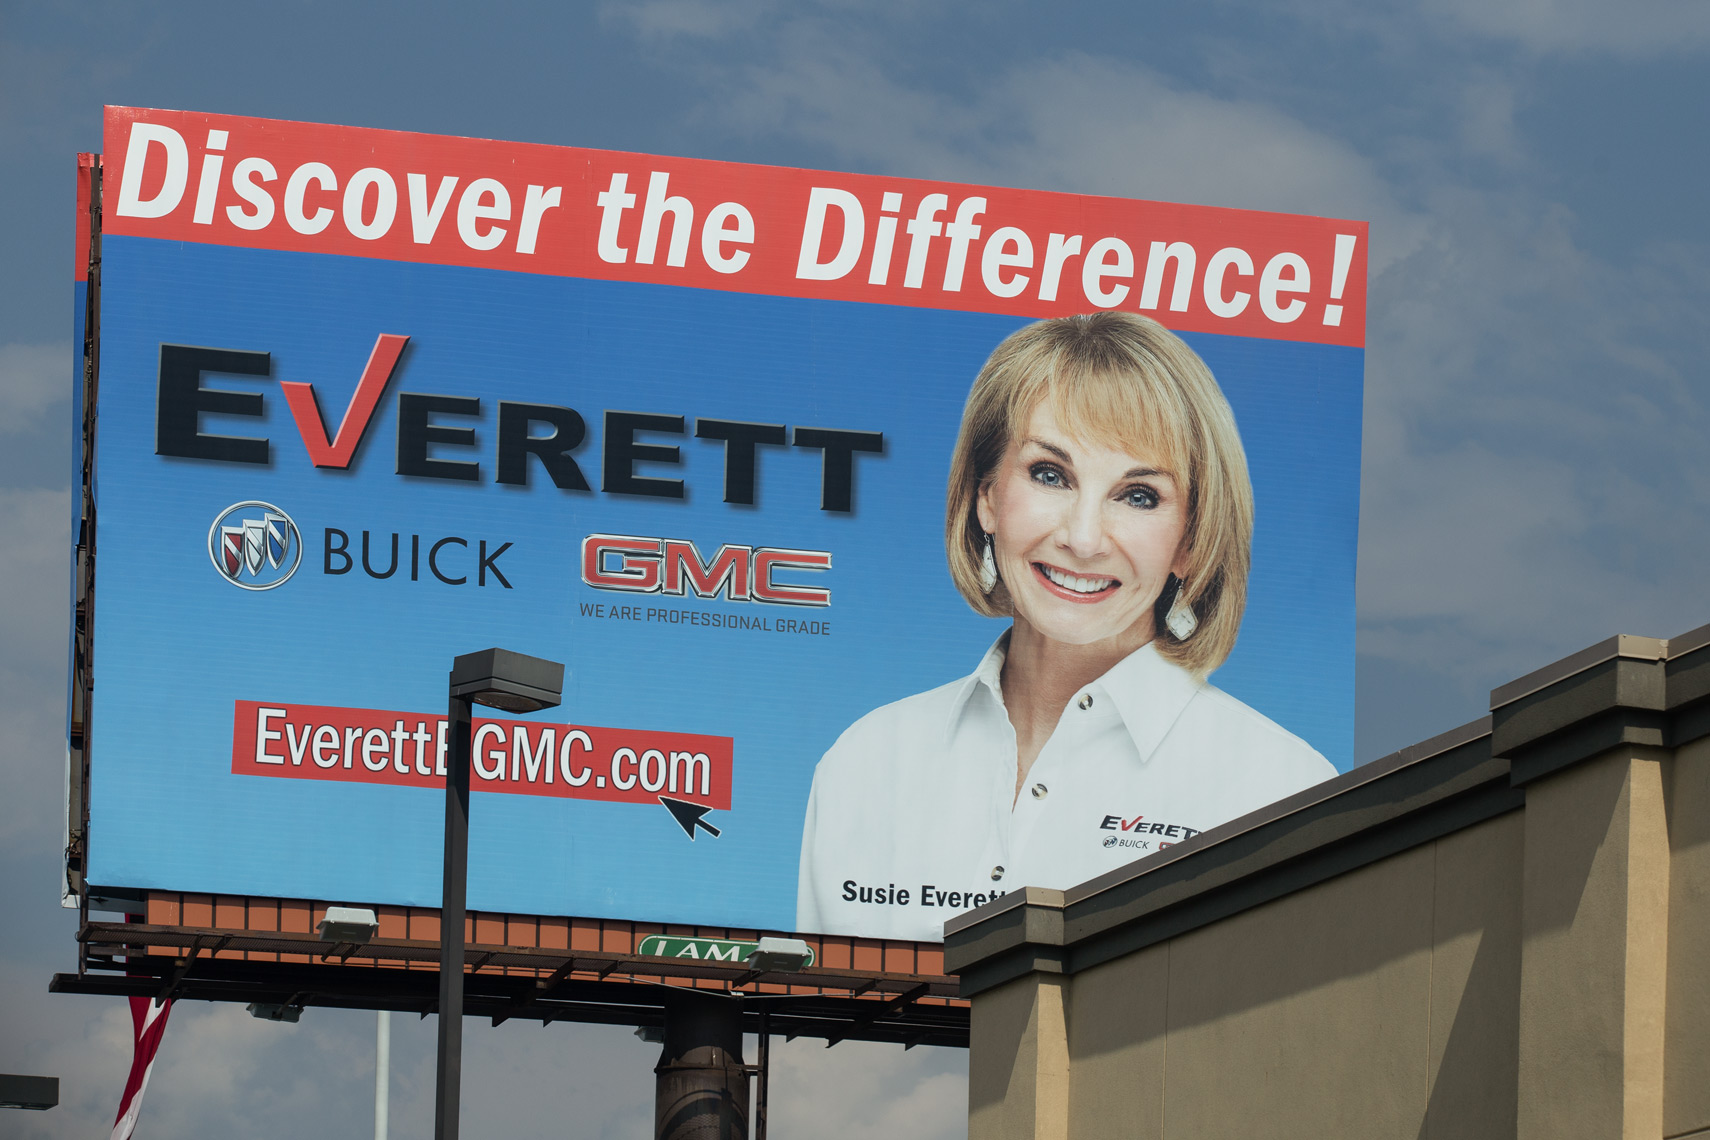 Susie Everett Dealership  Headshot and campaign